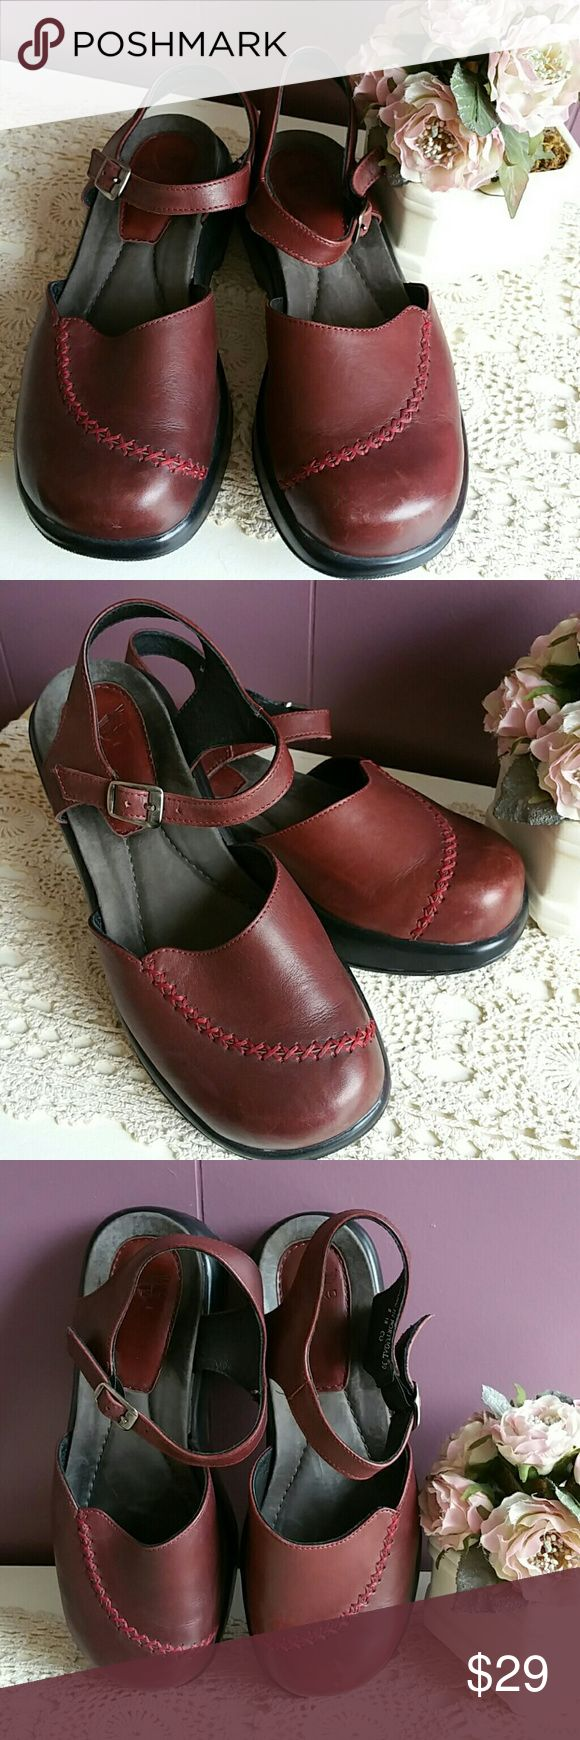 Dansko shoe sizes shoes collections shoe size conversion charts choice image free any chart examples 38 best addicted to dansko images on pinterest clogs clogs nvjuhfo Image collections